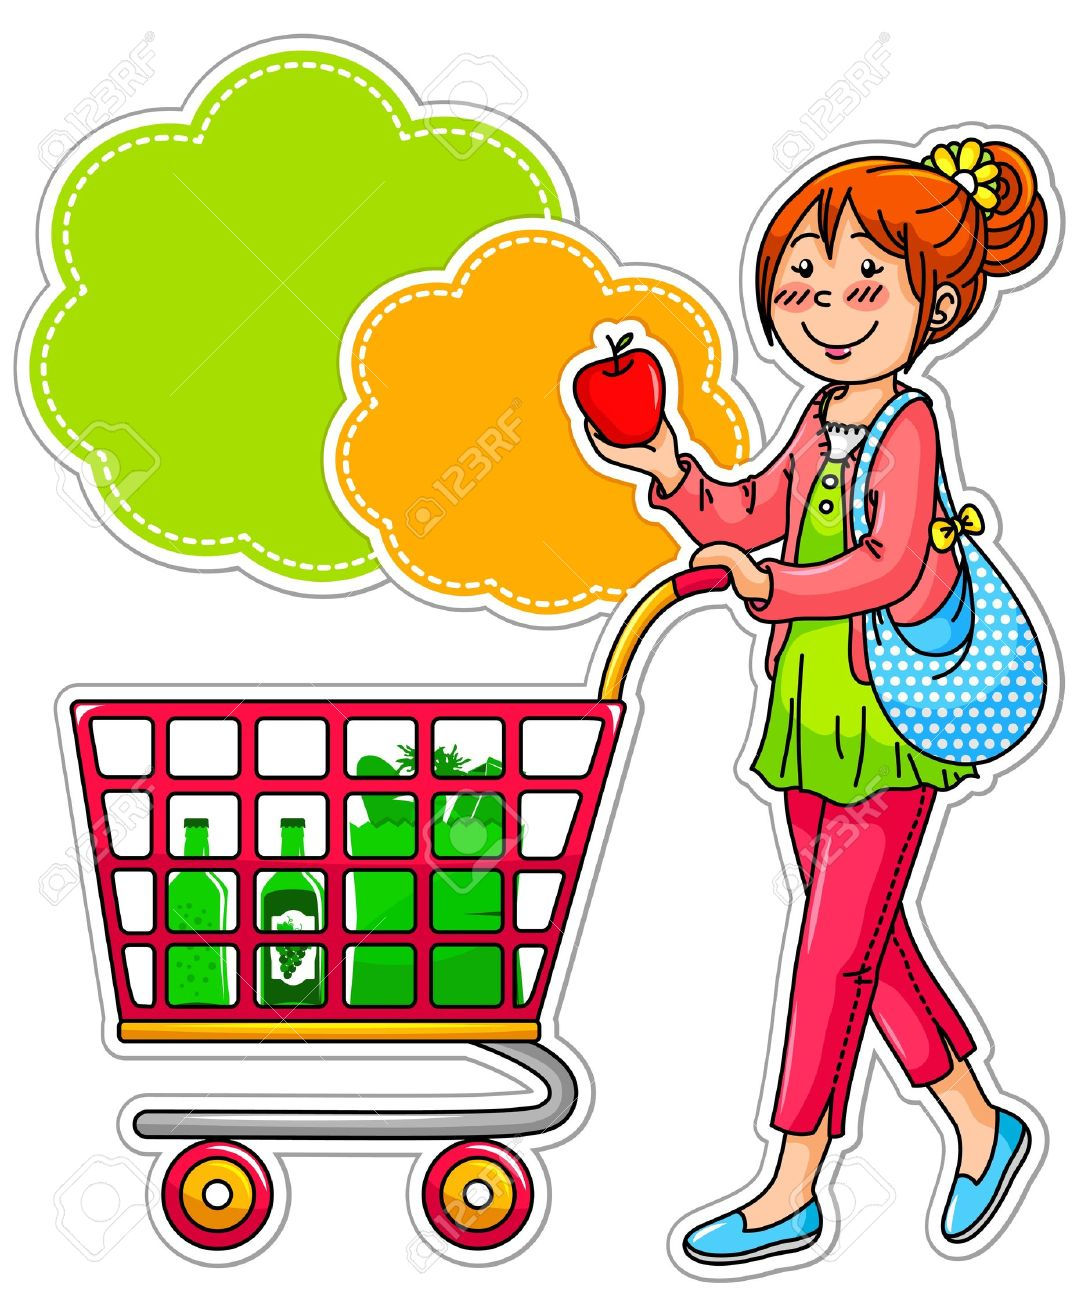 supermarket clipart clipart panda free clipart images grocery shopping clipart black and white grocery shopping clipart images free